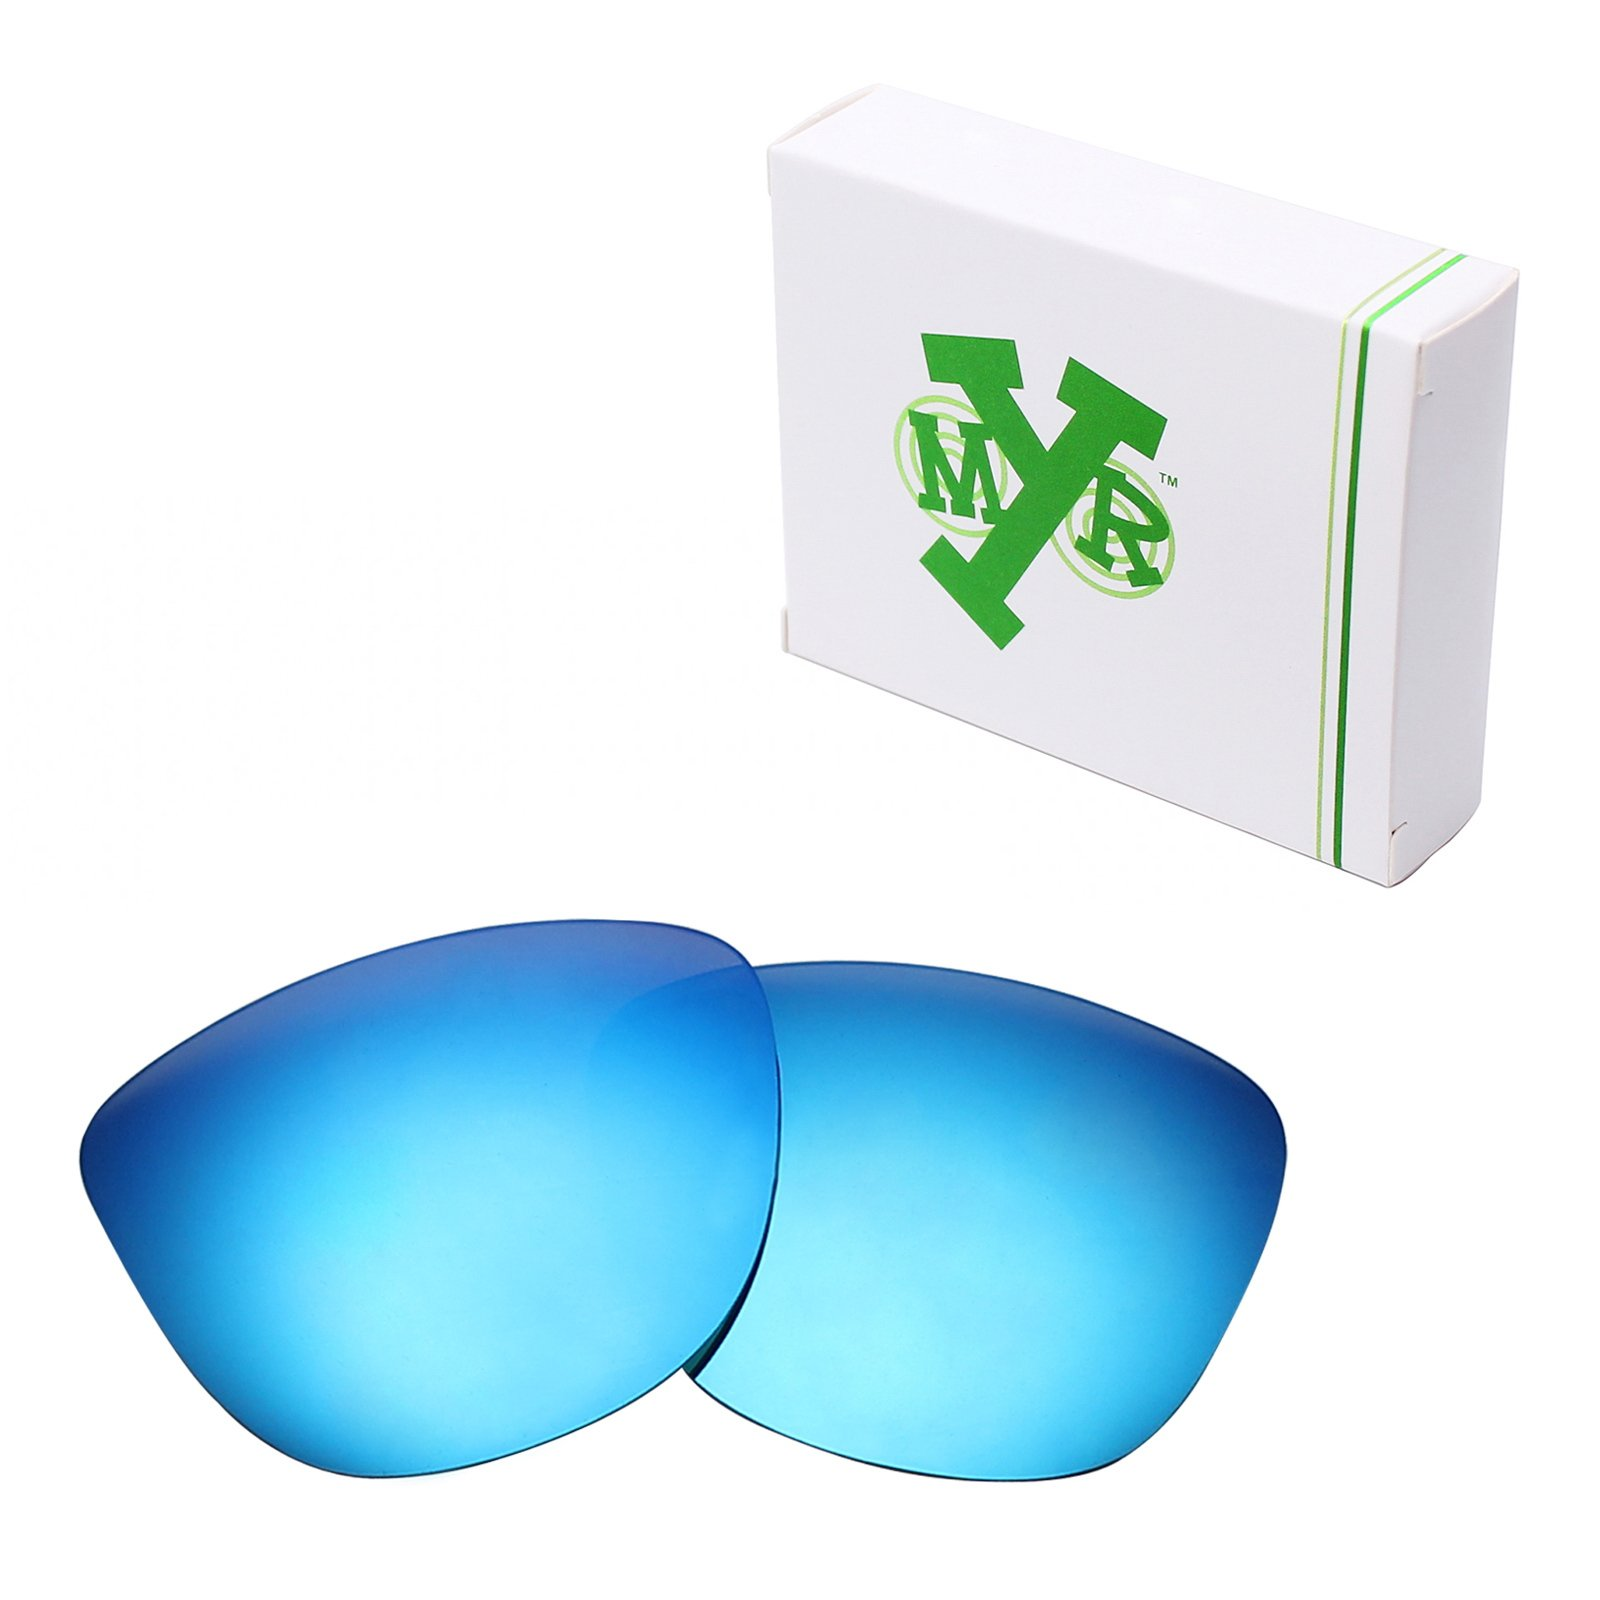 Mryok UV400 Replacement Lenses for Oakley Frogskins - Ice Blue by Mryok